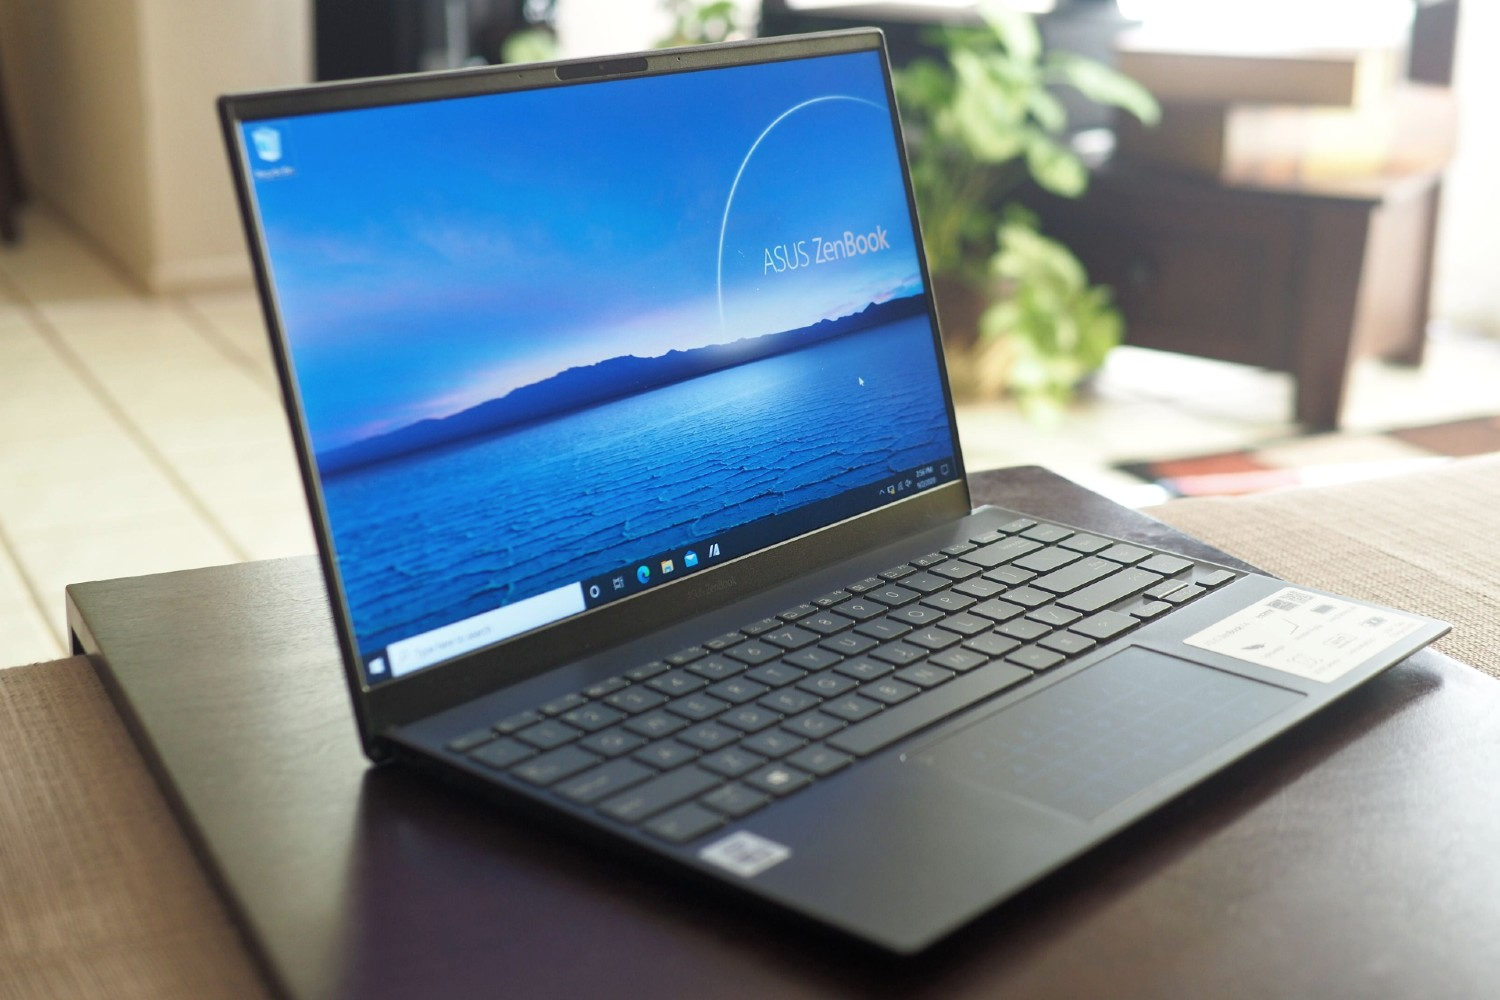 Best Laptop for Multitasking And Video